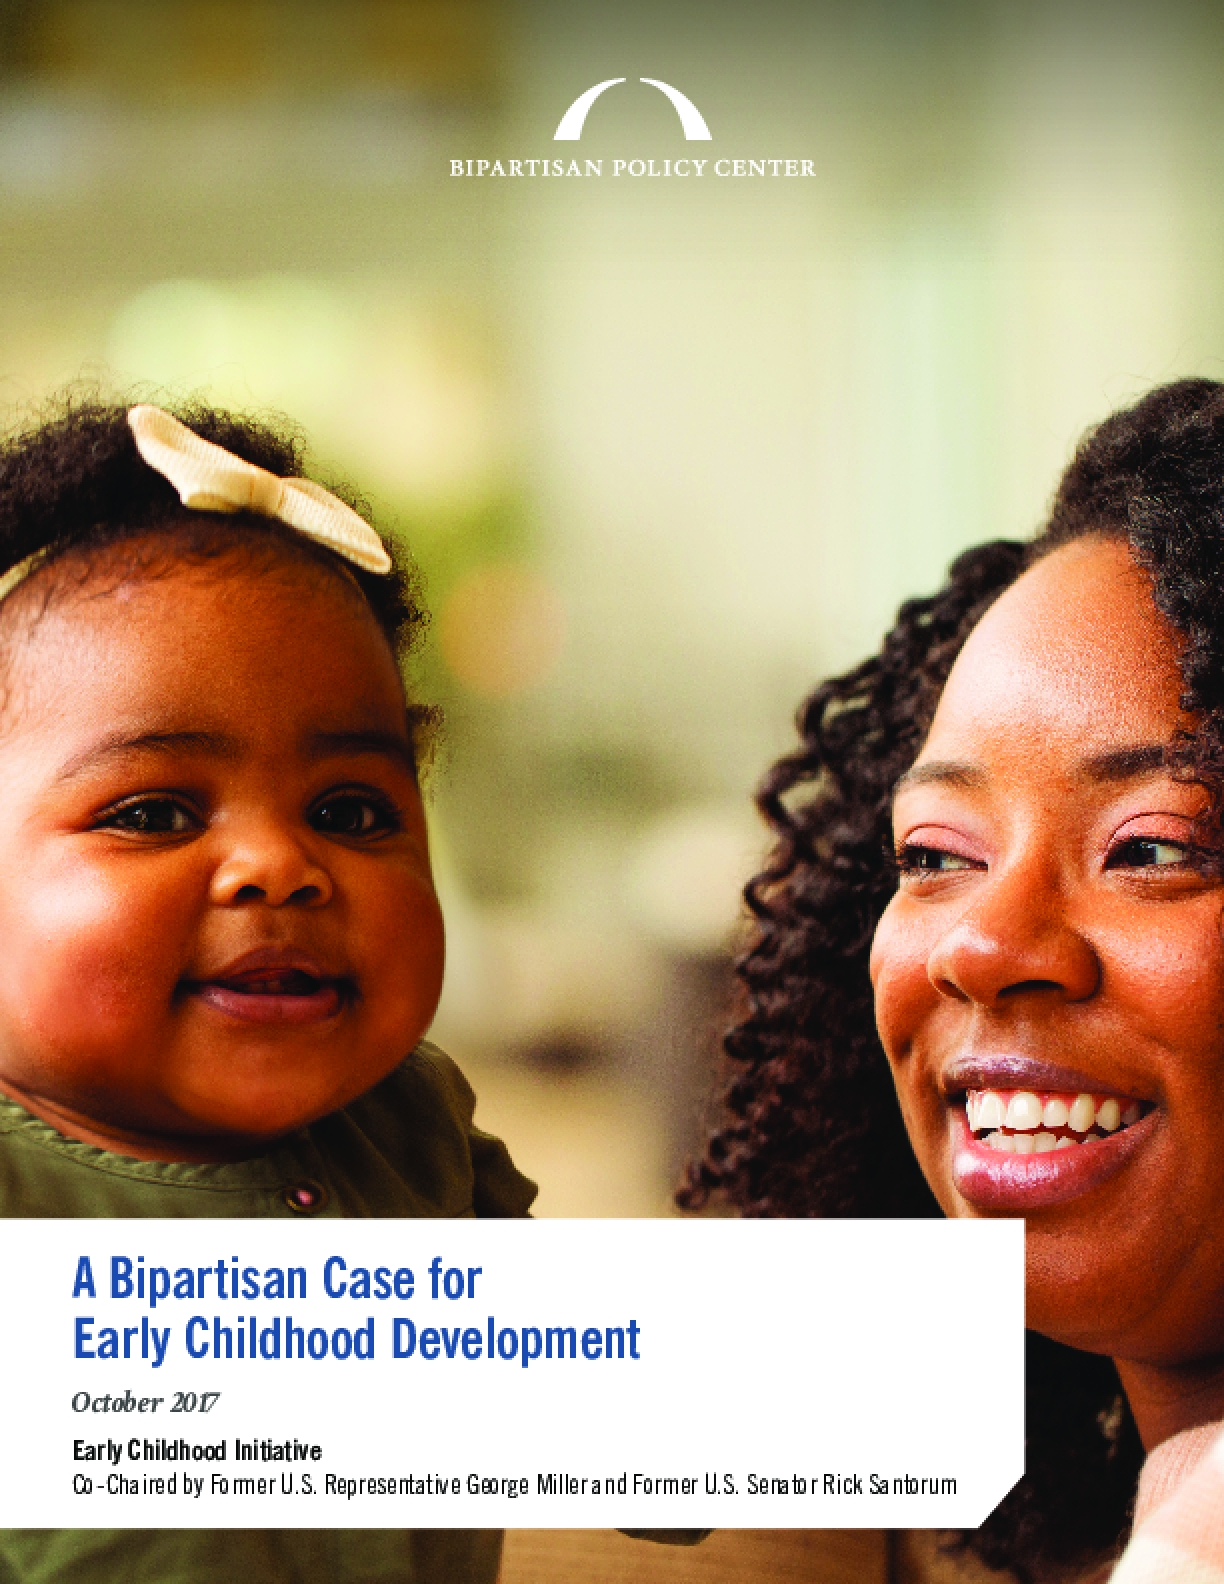 A Bipartisan Case for Early Childhood Development